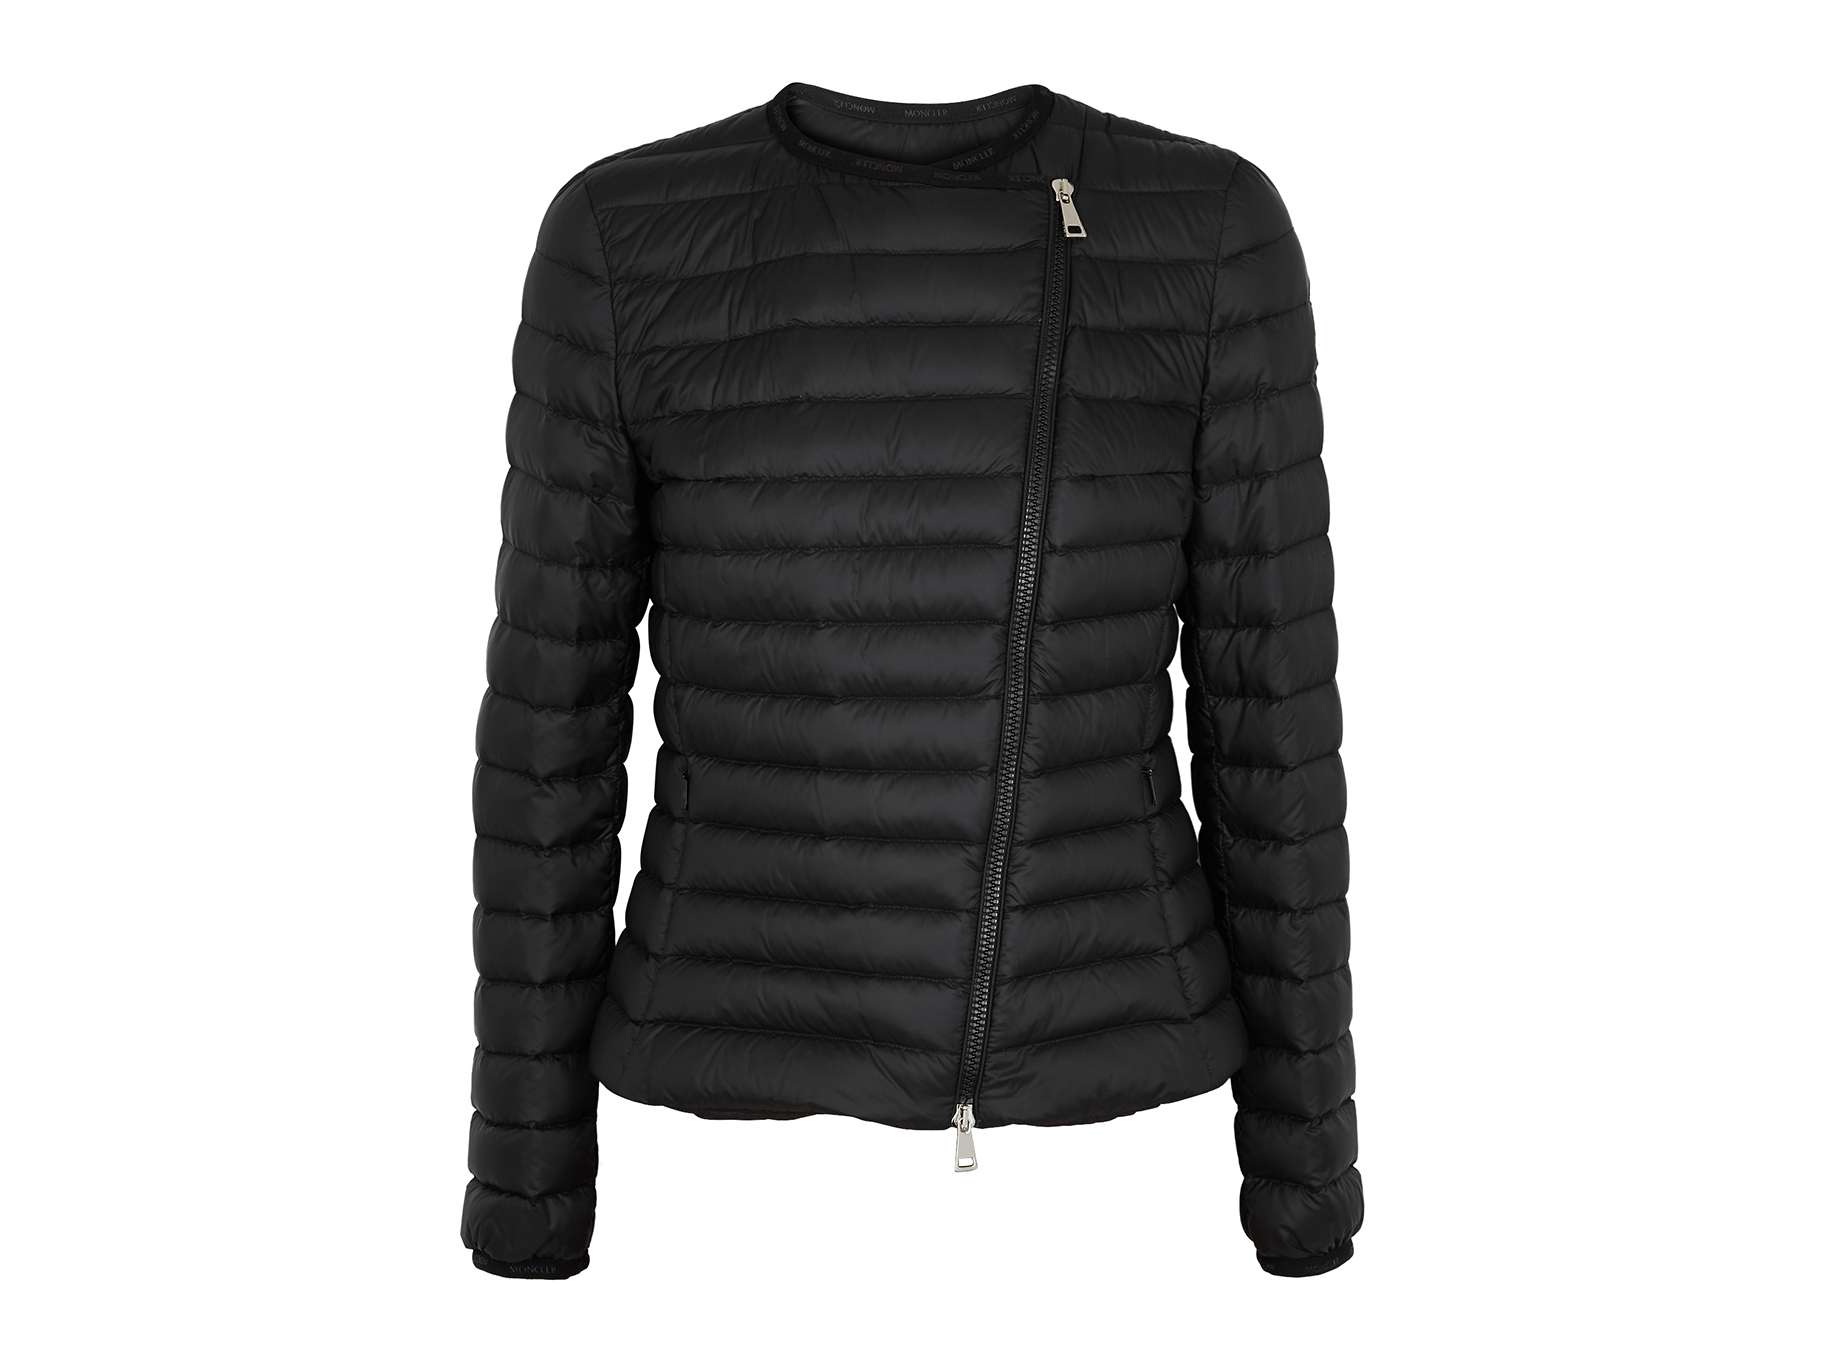 c6b66bfee Londres quilted shell jacket